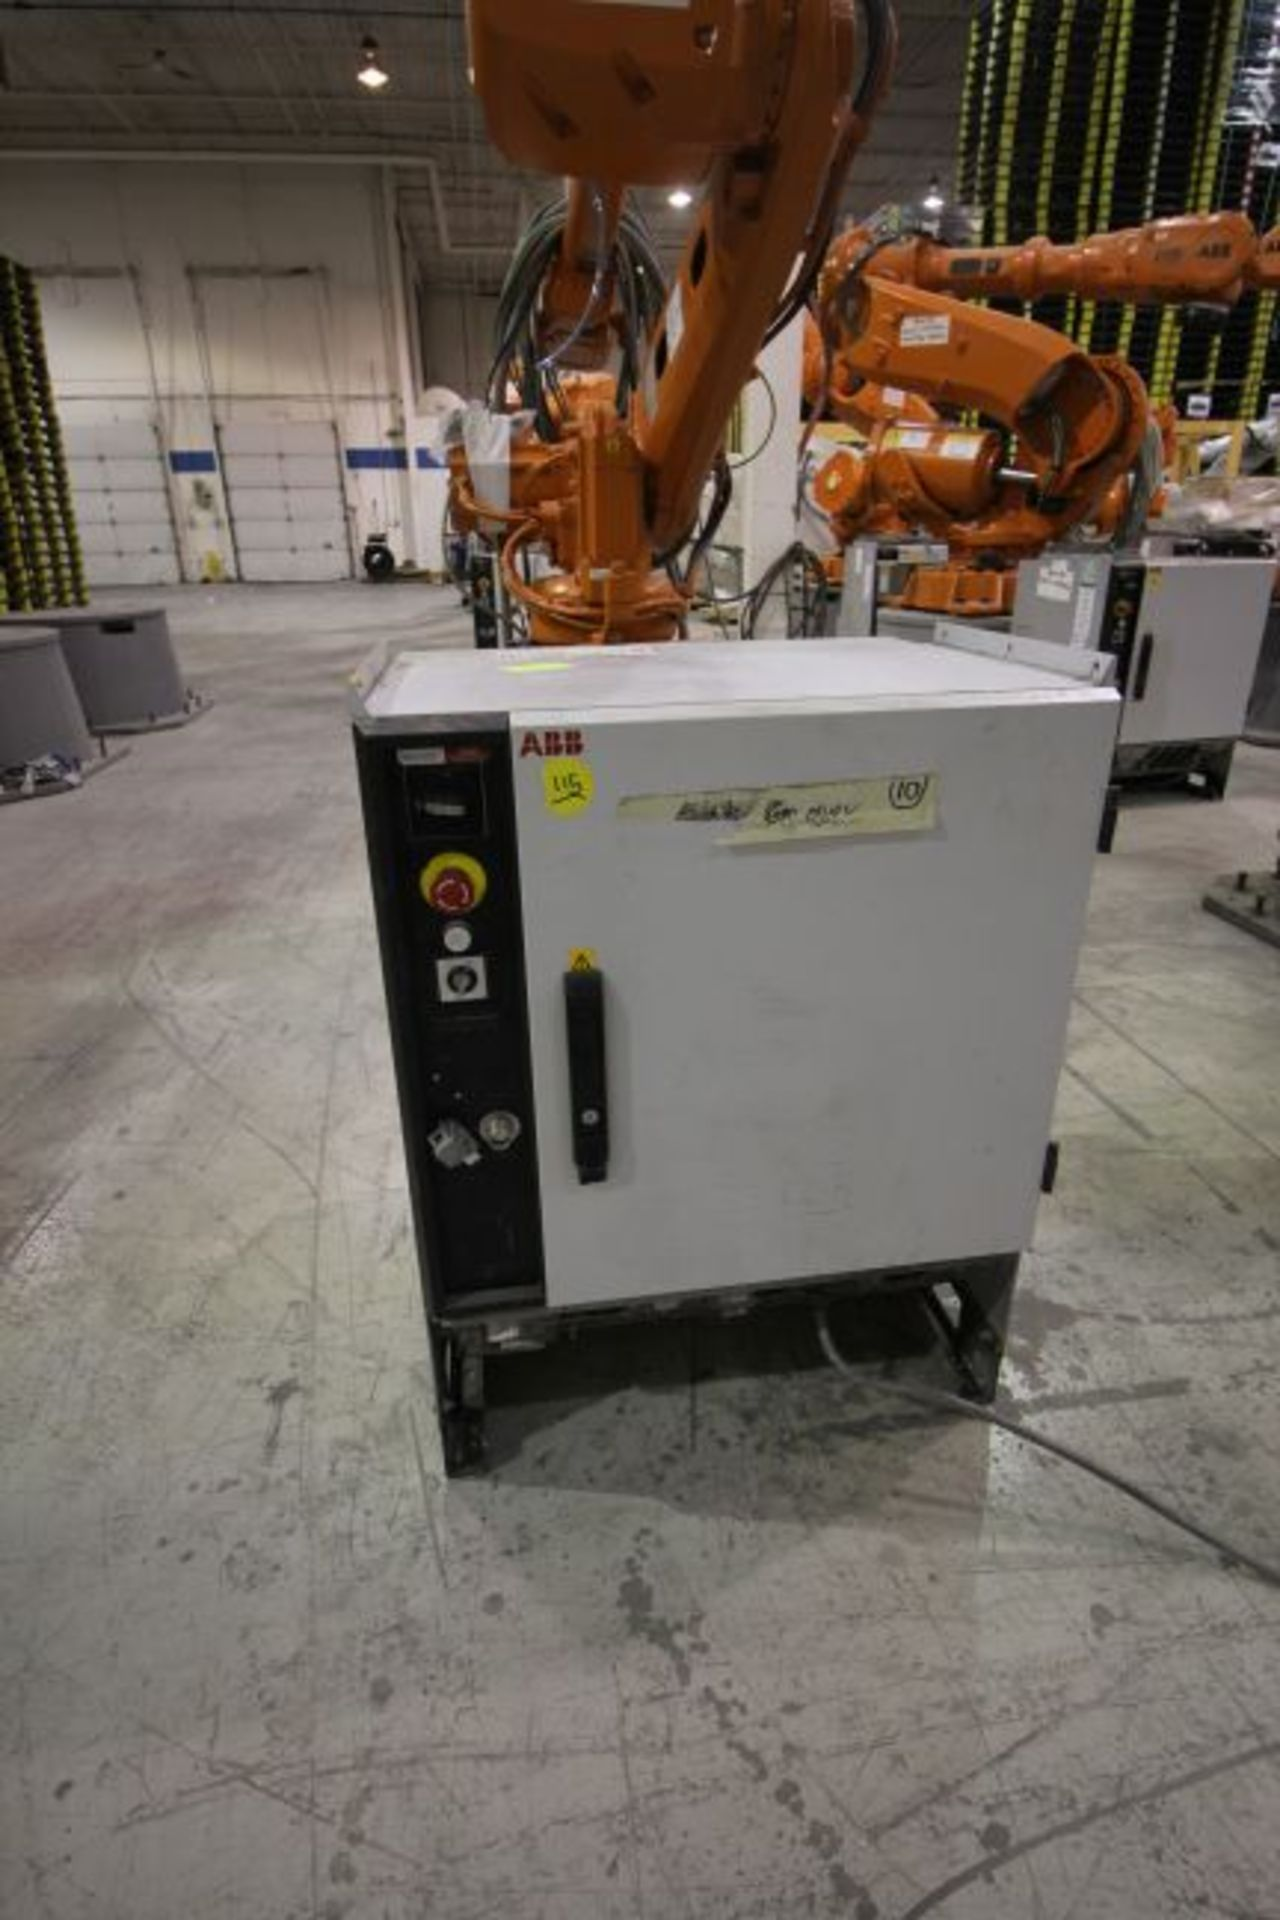 ABB ROBOT IRB 4600 2.55/40KG WITH IRC5 CONTROLS, YEAR 2014, SN 500798 TEACH PENDANT& CABLES - Image 5 of 9